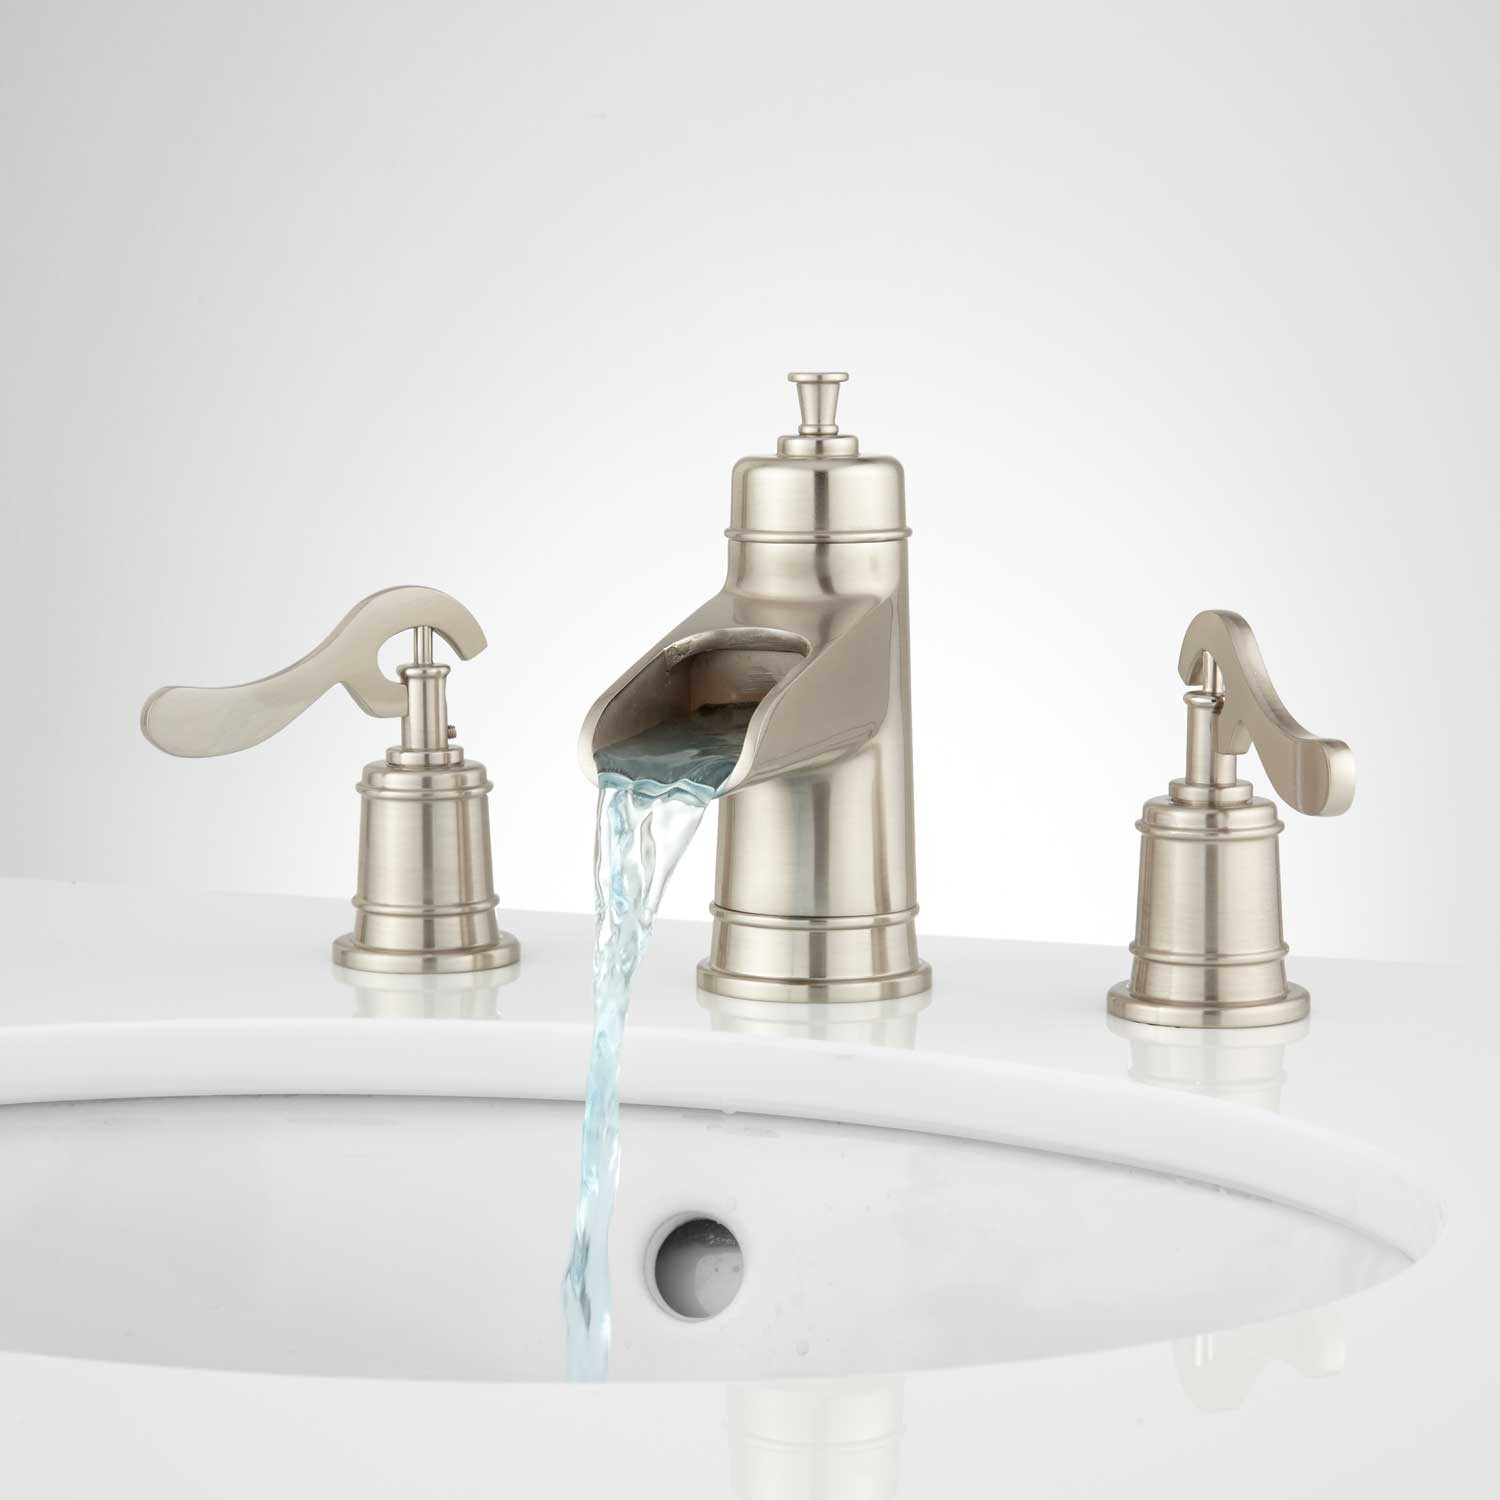 Bathroom Faucets | Price Pfister | Lowes Faucets Bathroom